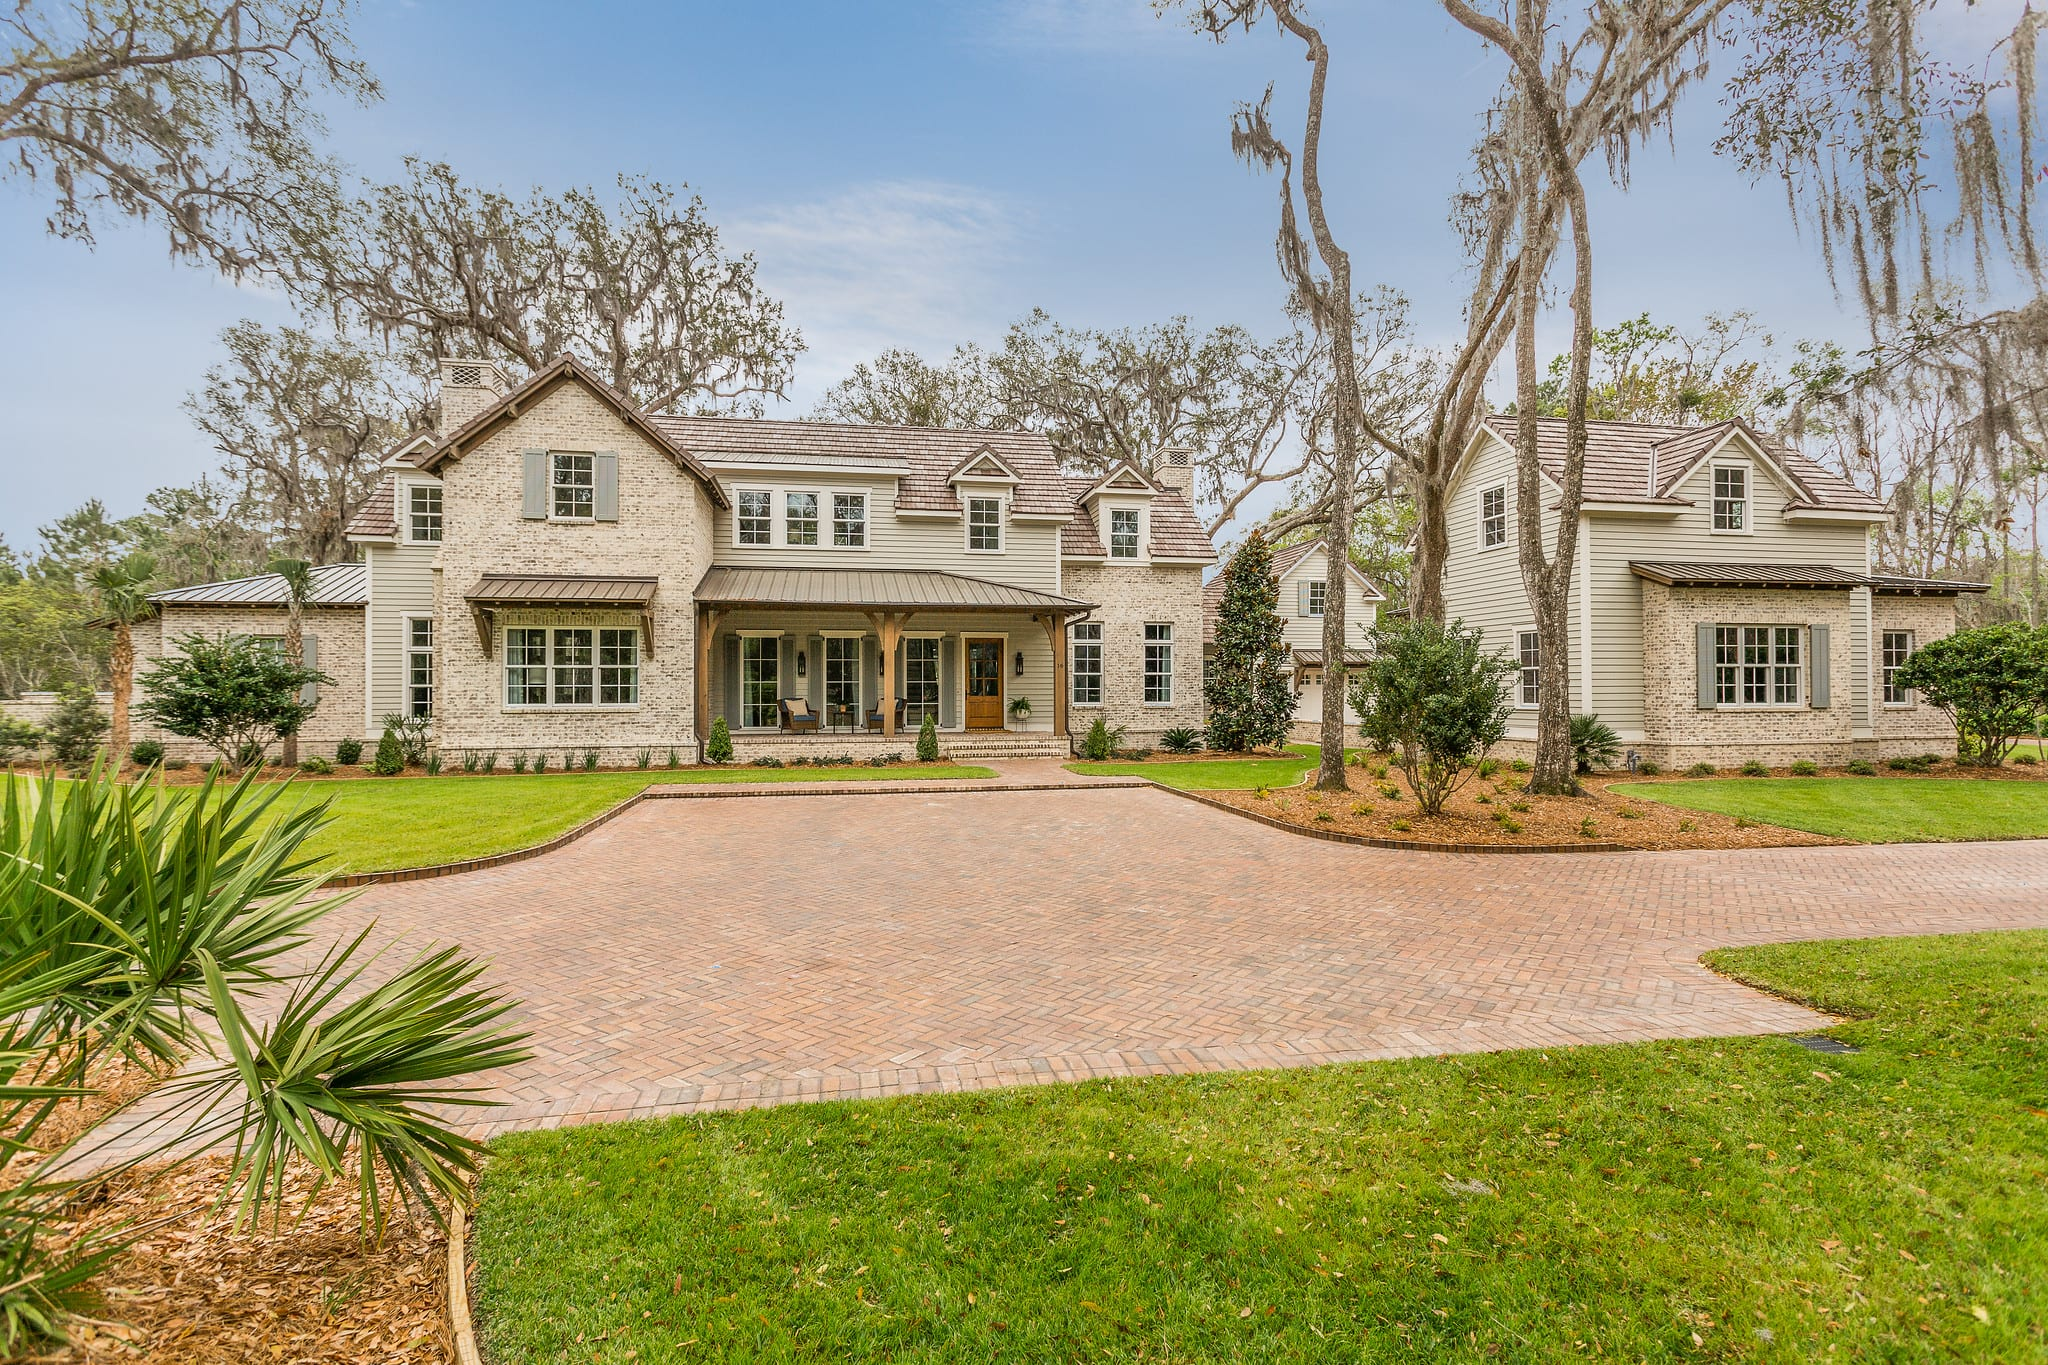 Private Residence - St. Simons Island Ludowici Roof Tile